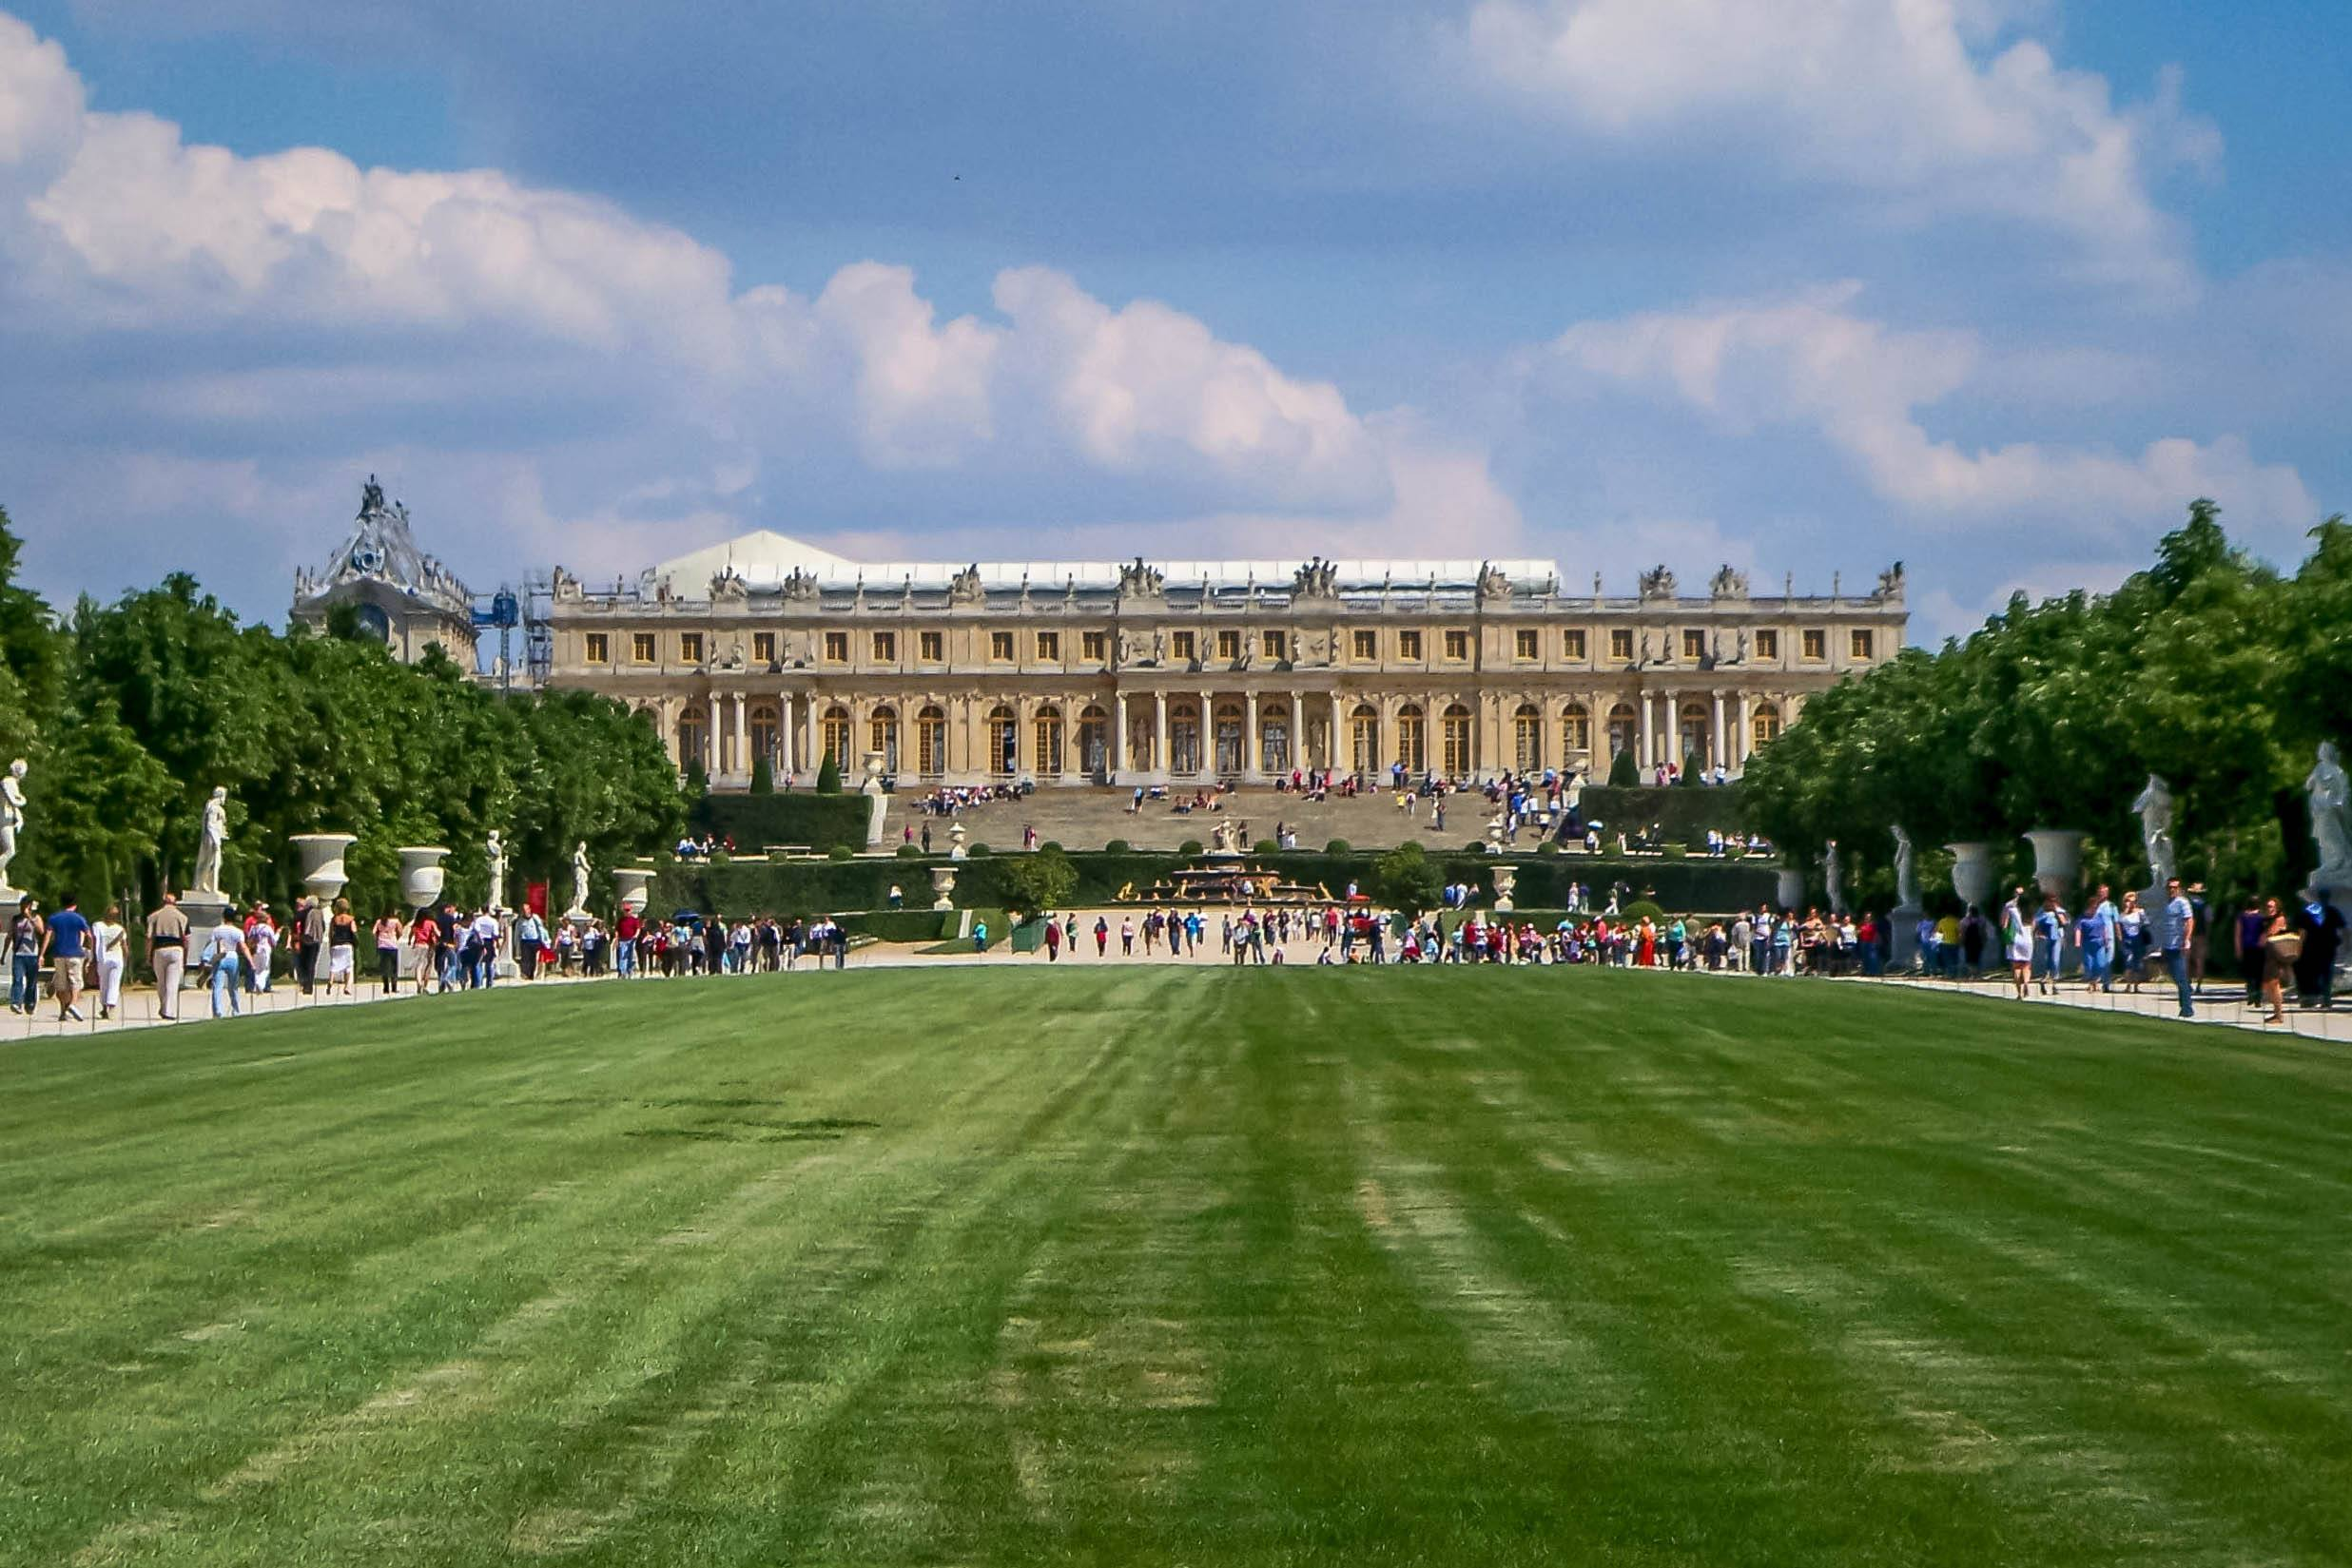 The Palace of Versailles in France -- one of the most spectacular palaces in Europe